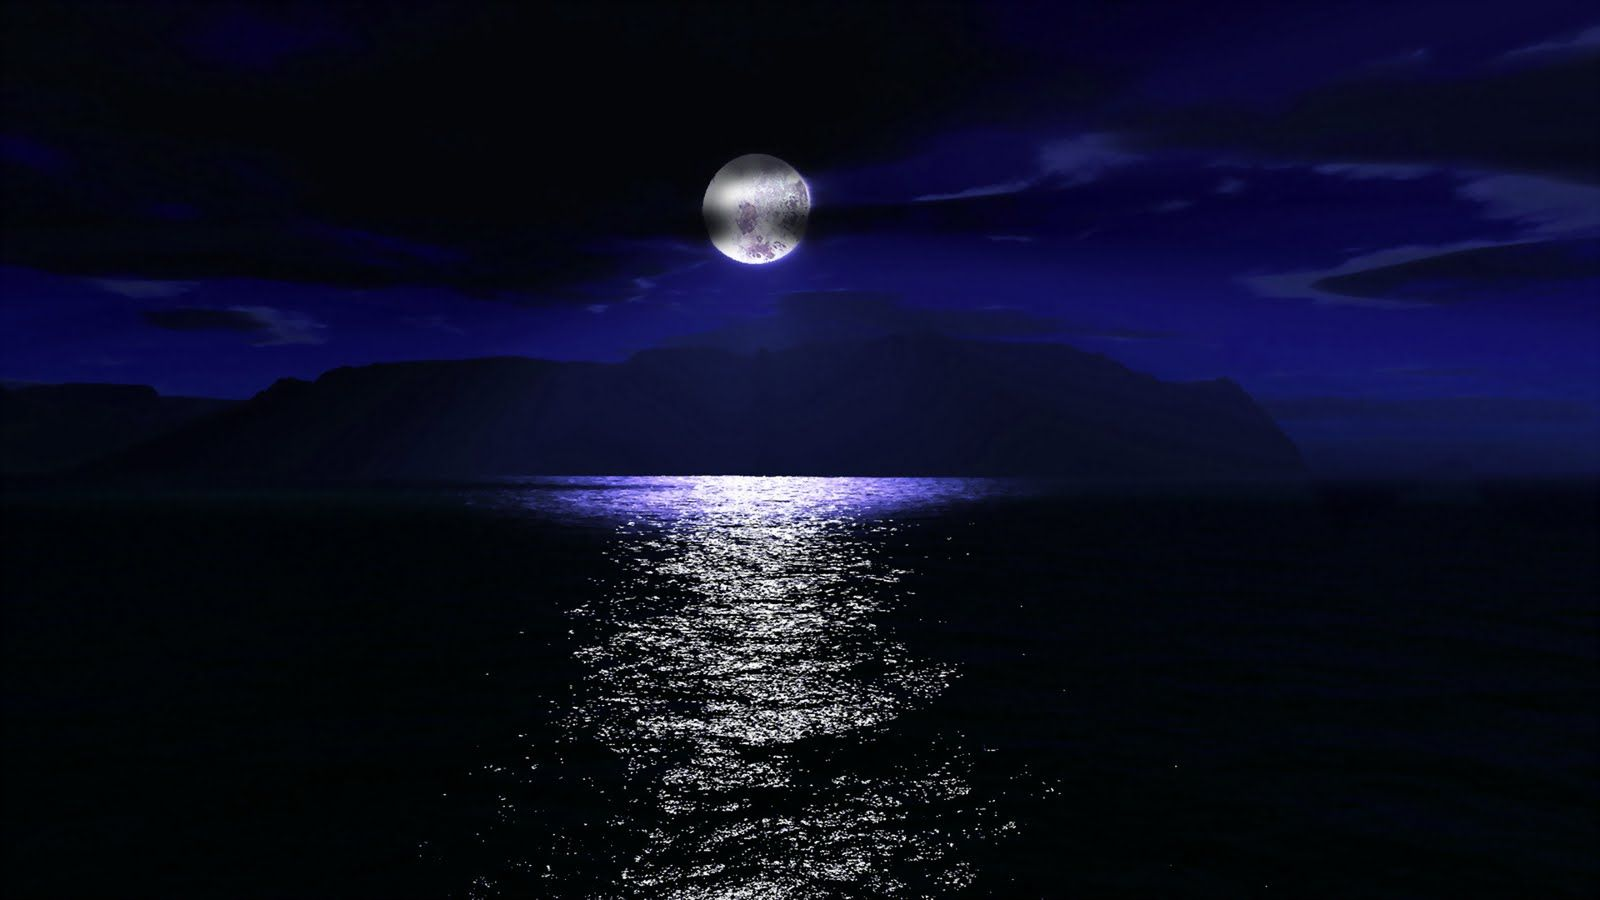 Sea Moon at Mid Night Wallpapers | HD Wallpapers | Images Wallpapers in 2019 | Moon, Sky moon ...